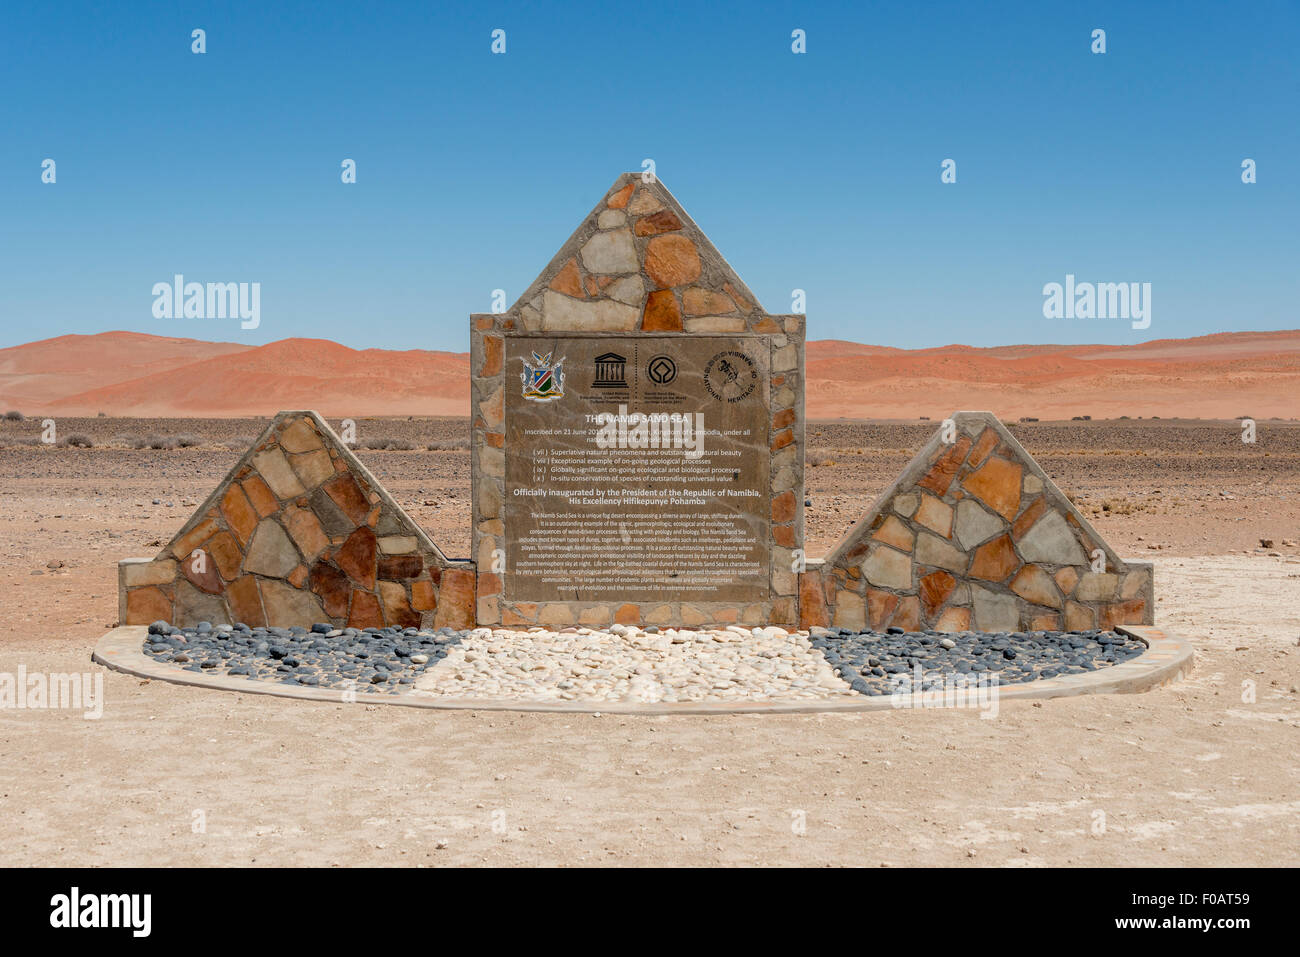 The Namib Sand Sea World Heritage Sign, Namib-Naukluft National Park, Sossusviei, Namib Desert, Hardap Region, Republic - Stock Image